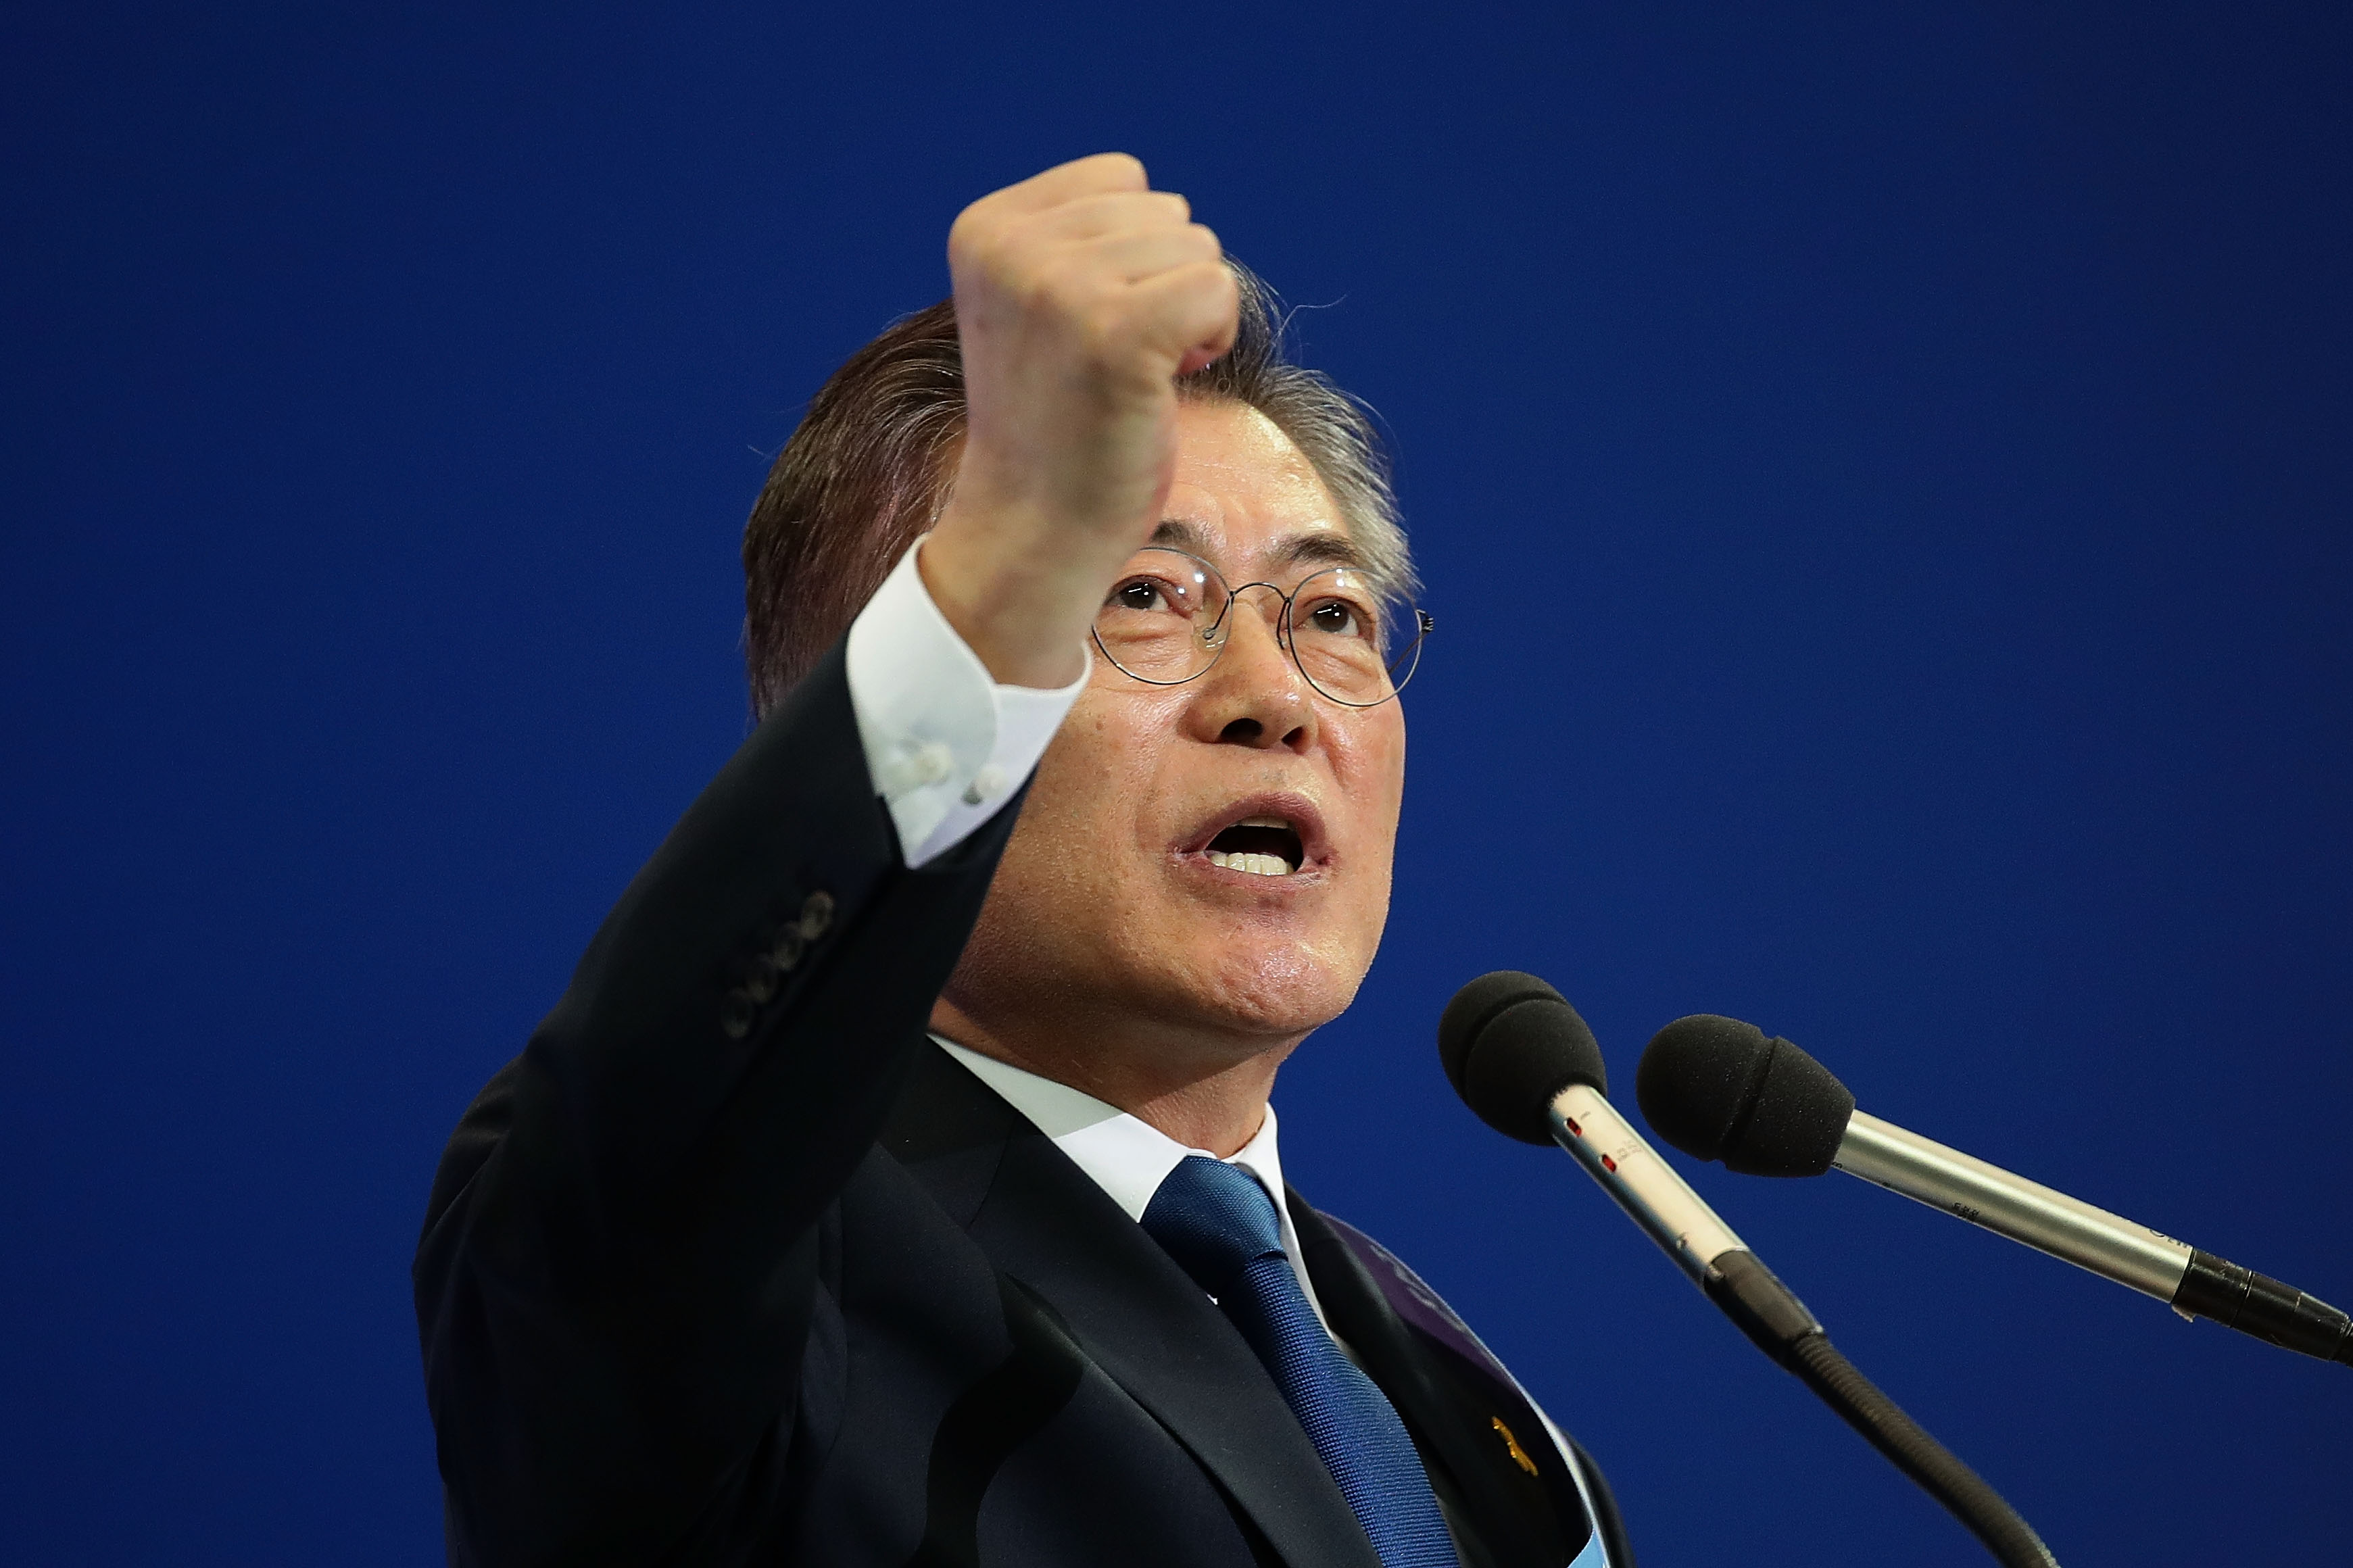 Moon Jae-In, presidential election candidate for the Democratic Party of Korea, on April 3, 2017, in Seoul